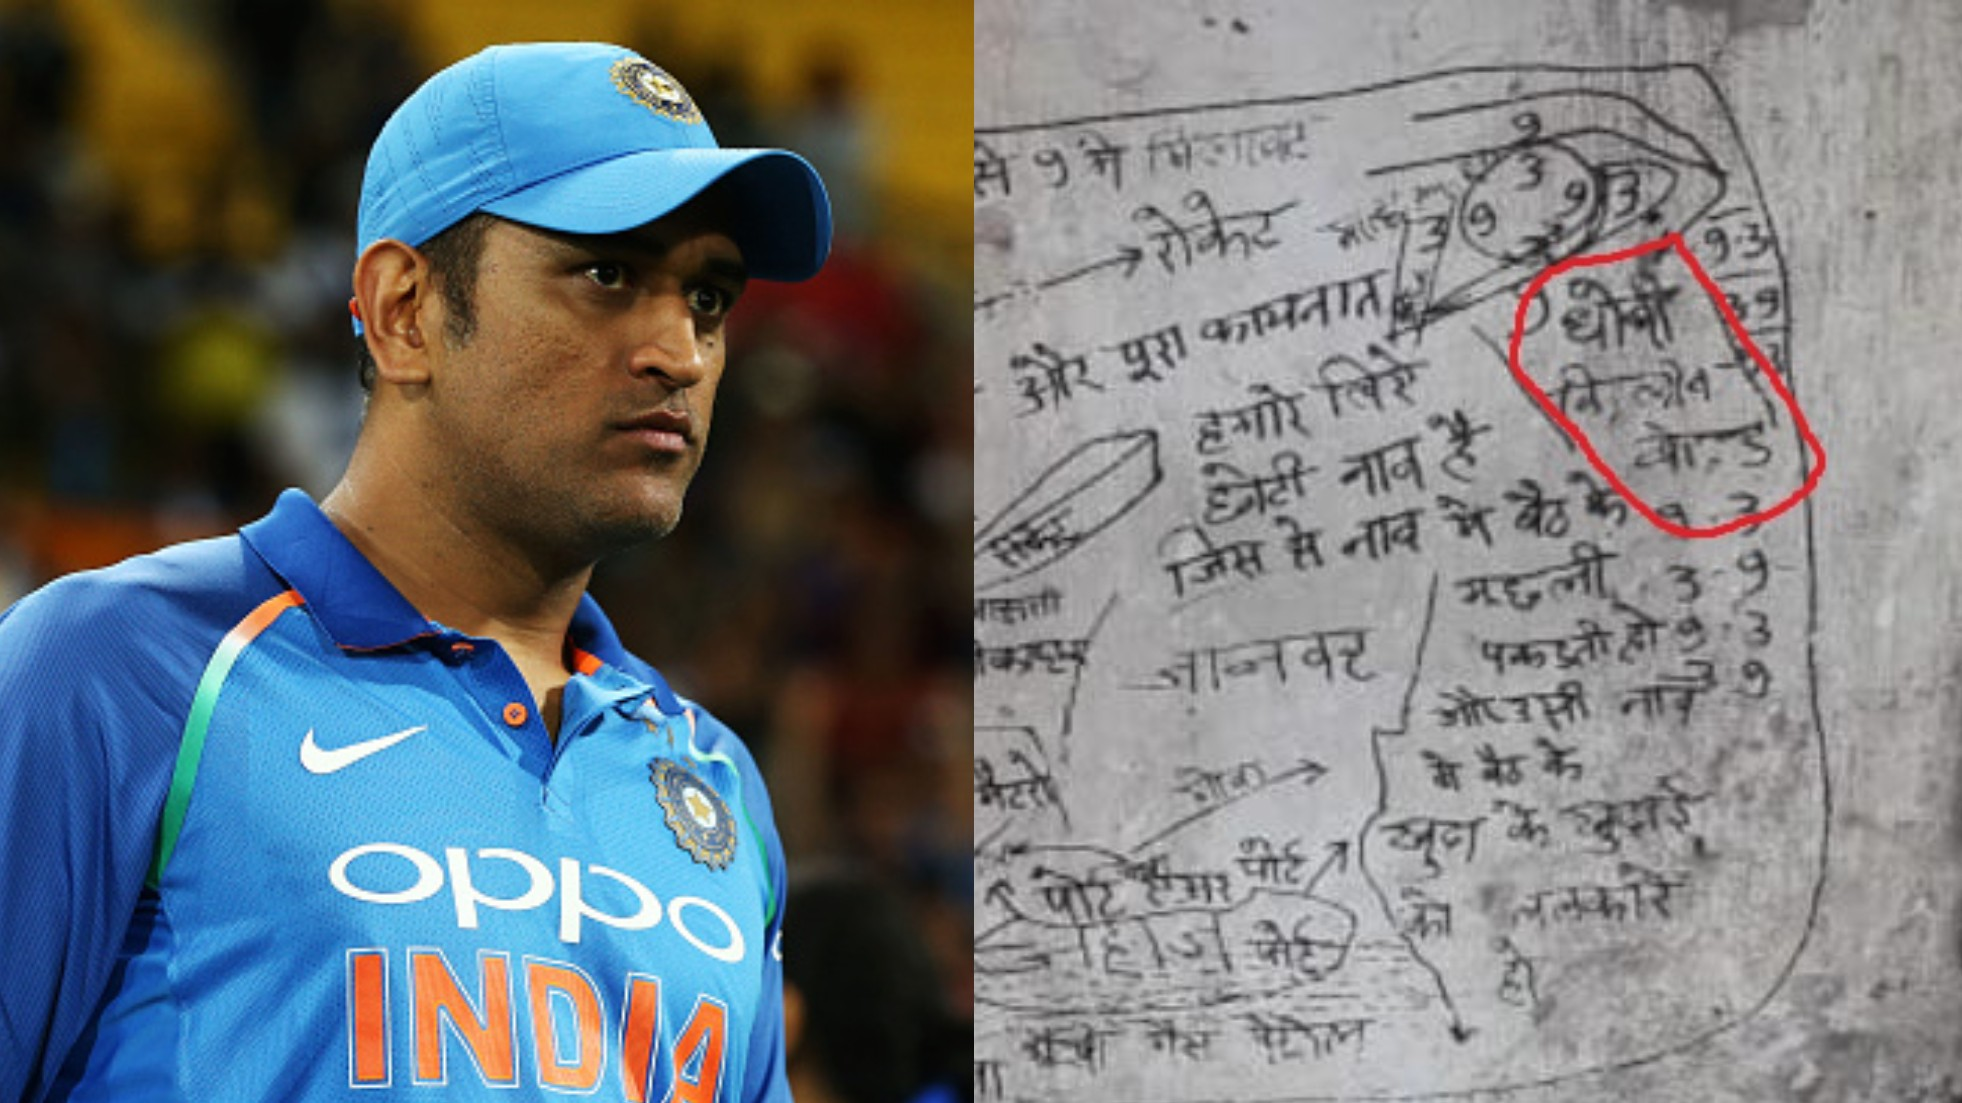 Islamic State (IS) messages with Dhoni's name on pillar in Navi Mumbai puts police on high alert